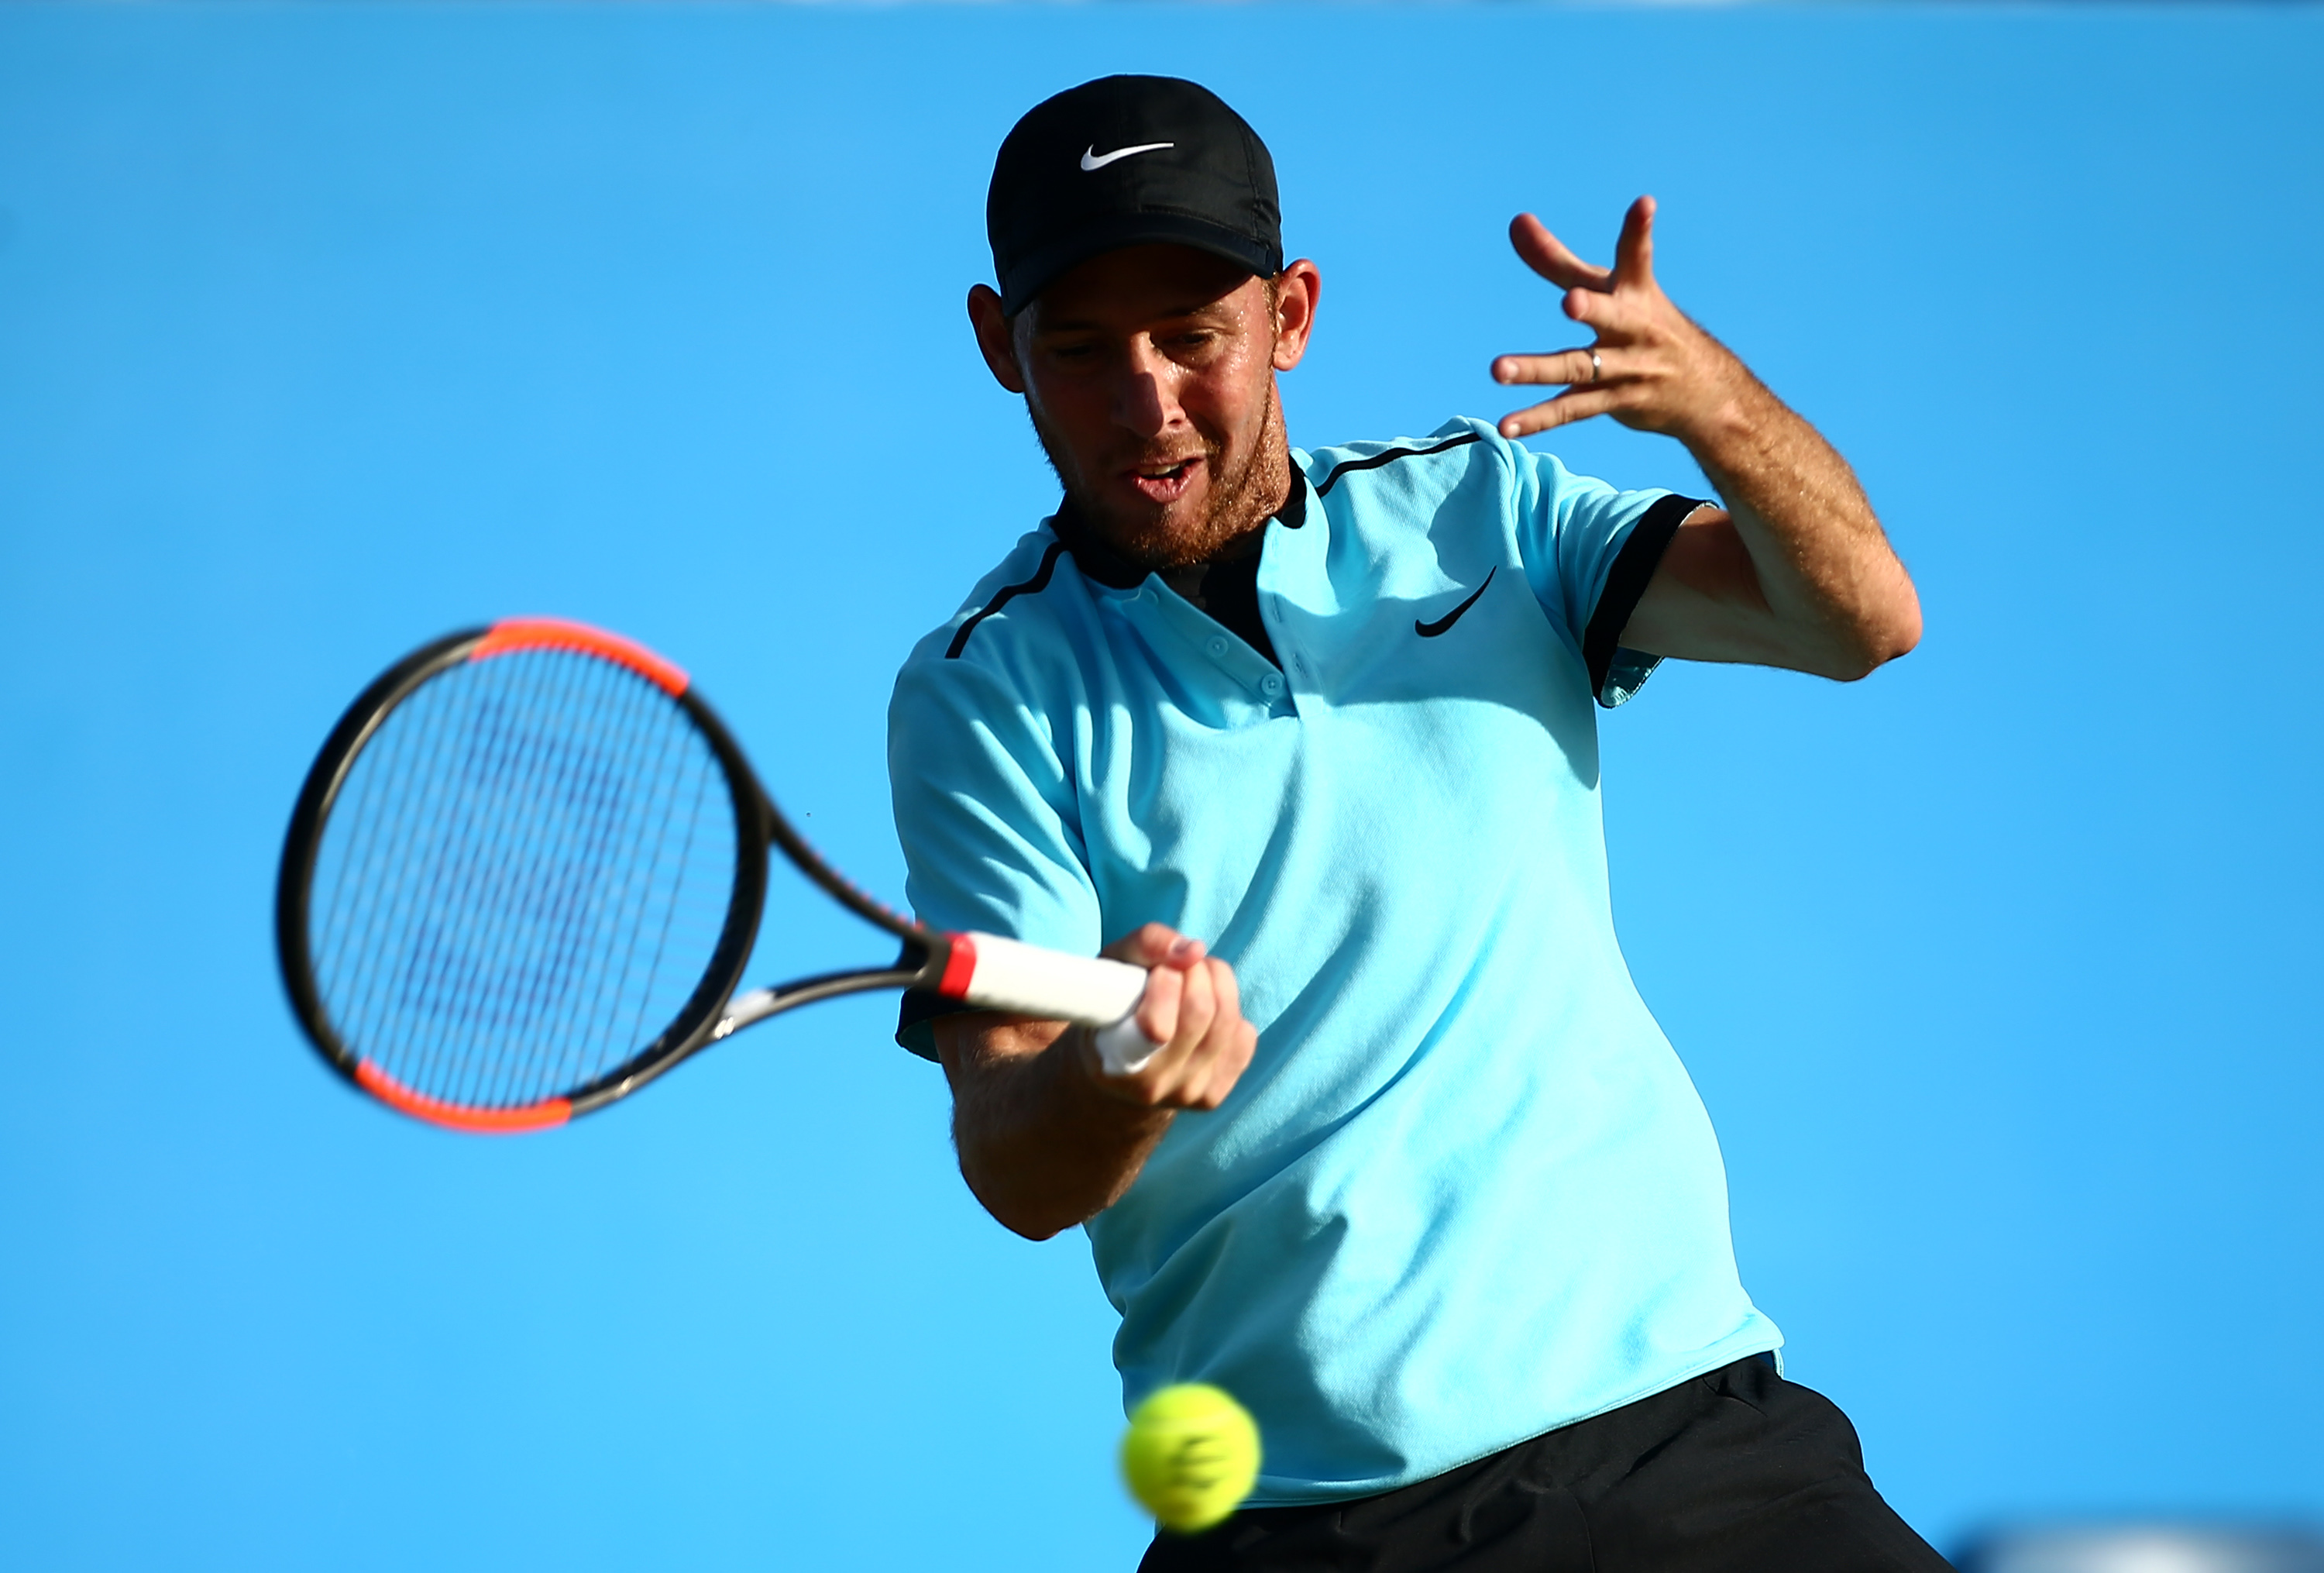 8758fd05a726 The ATP Challenger tournament will take place June 9 – 17 at Nottingham  Tennis Centre alongside the WTA tournament with four of the world s top 25  in the ...